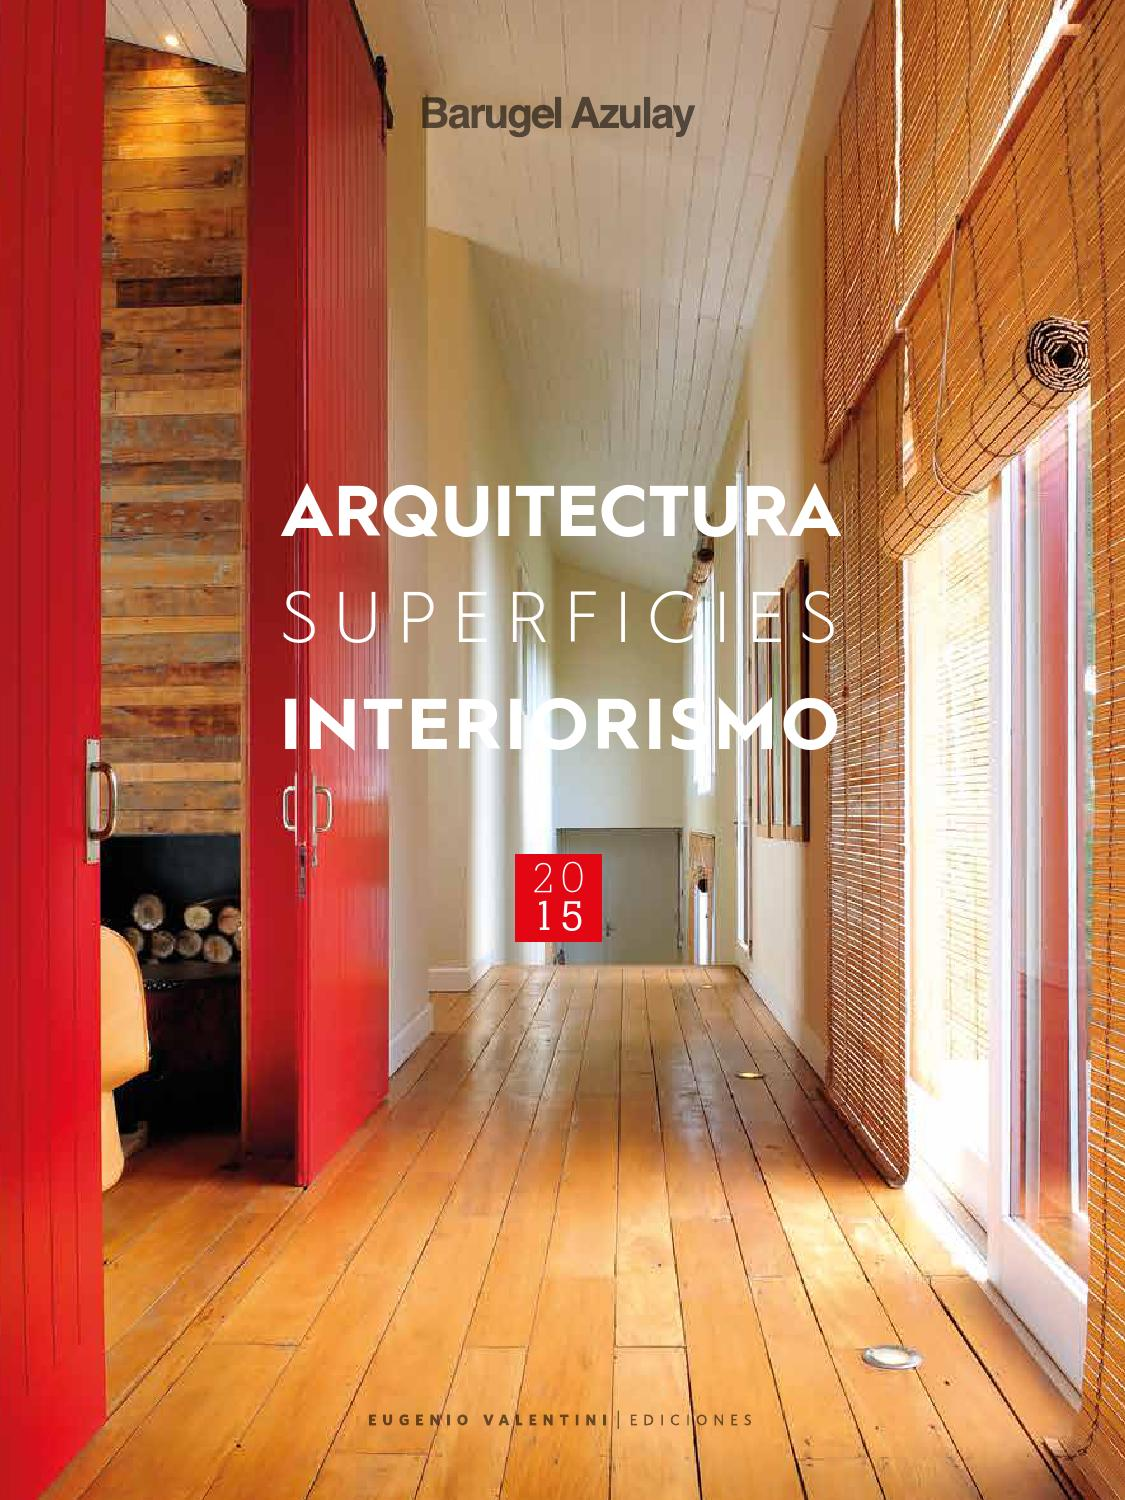 Arquitectura Superficies Interiorismo